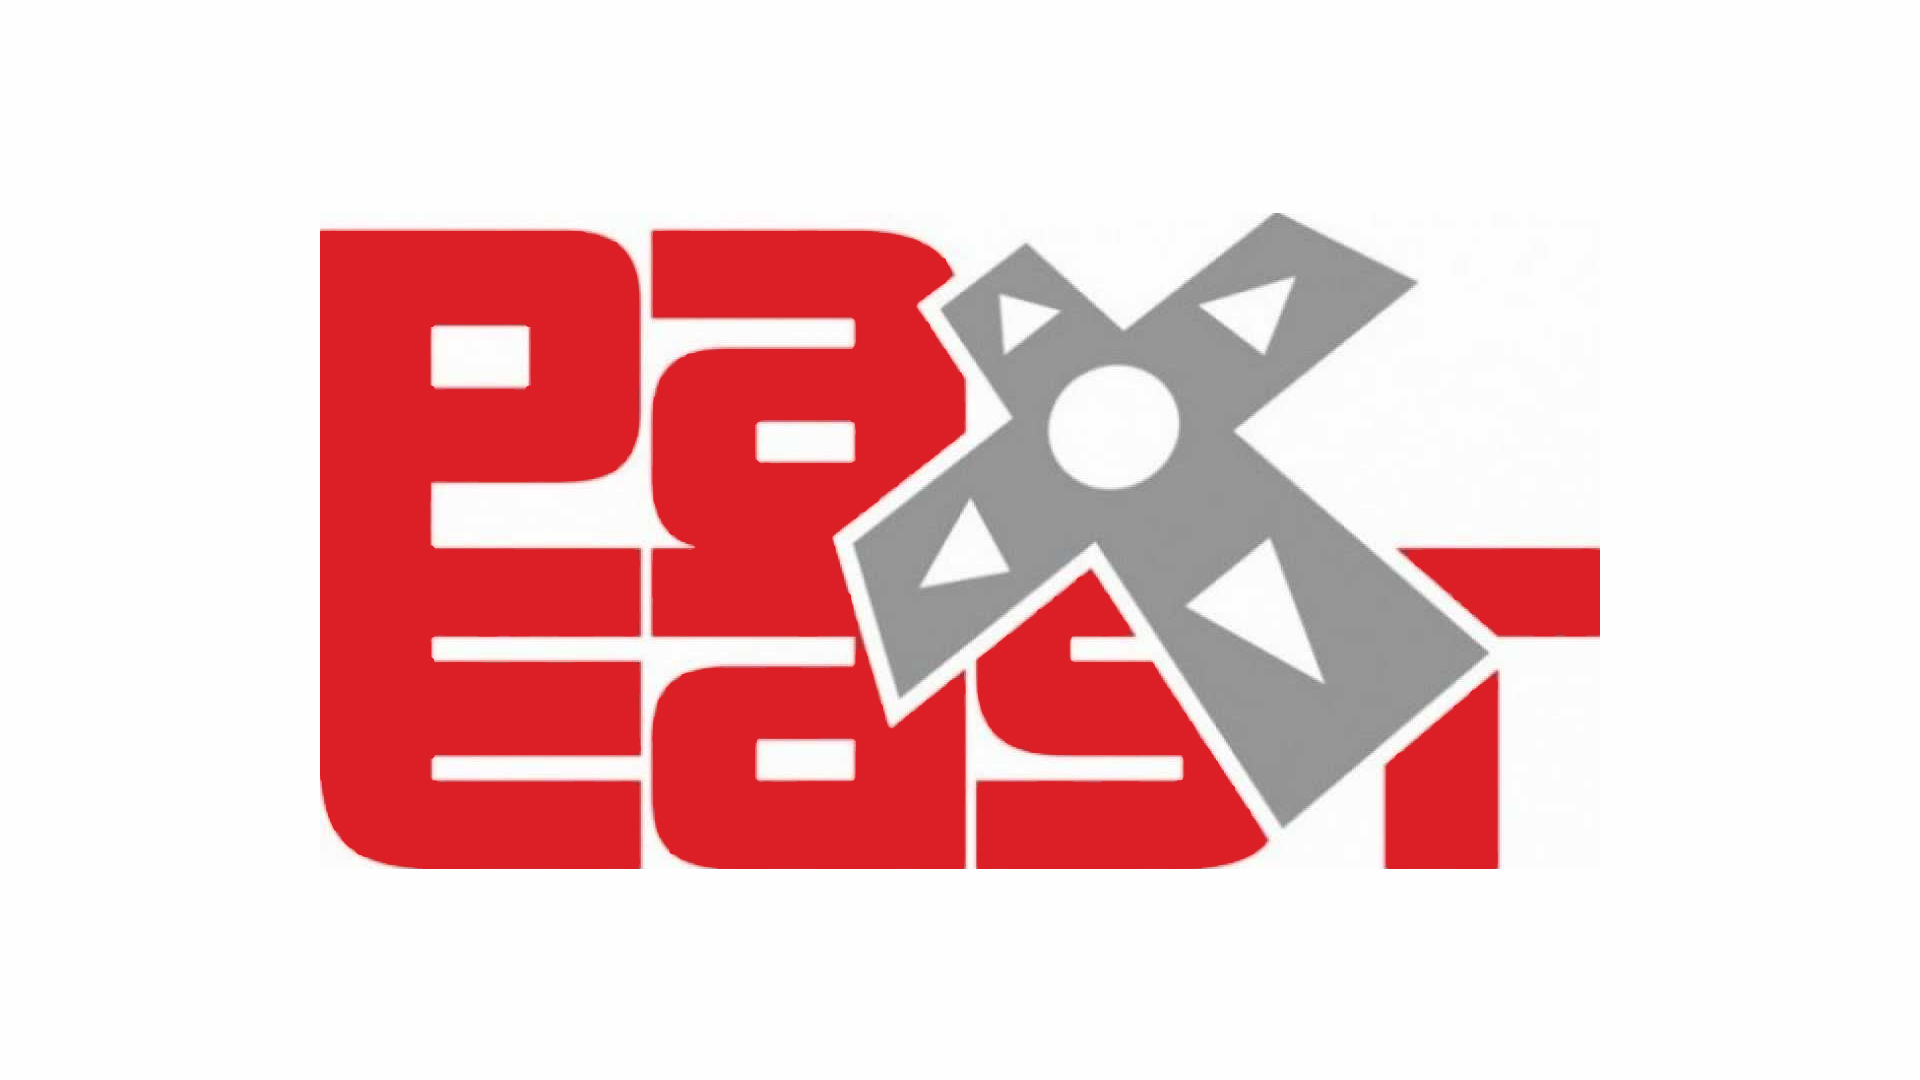 Pokemon GO! and Learning with Augmented Reality - (March, 2017) Penny Arcade Exposition (PAX). Boston.